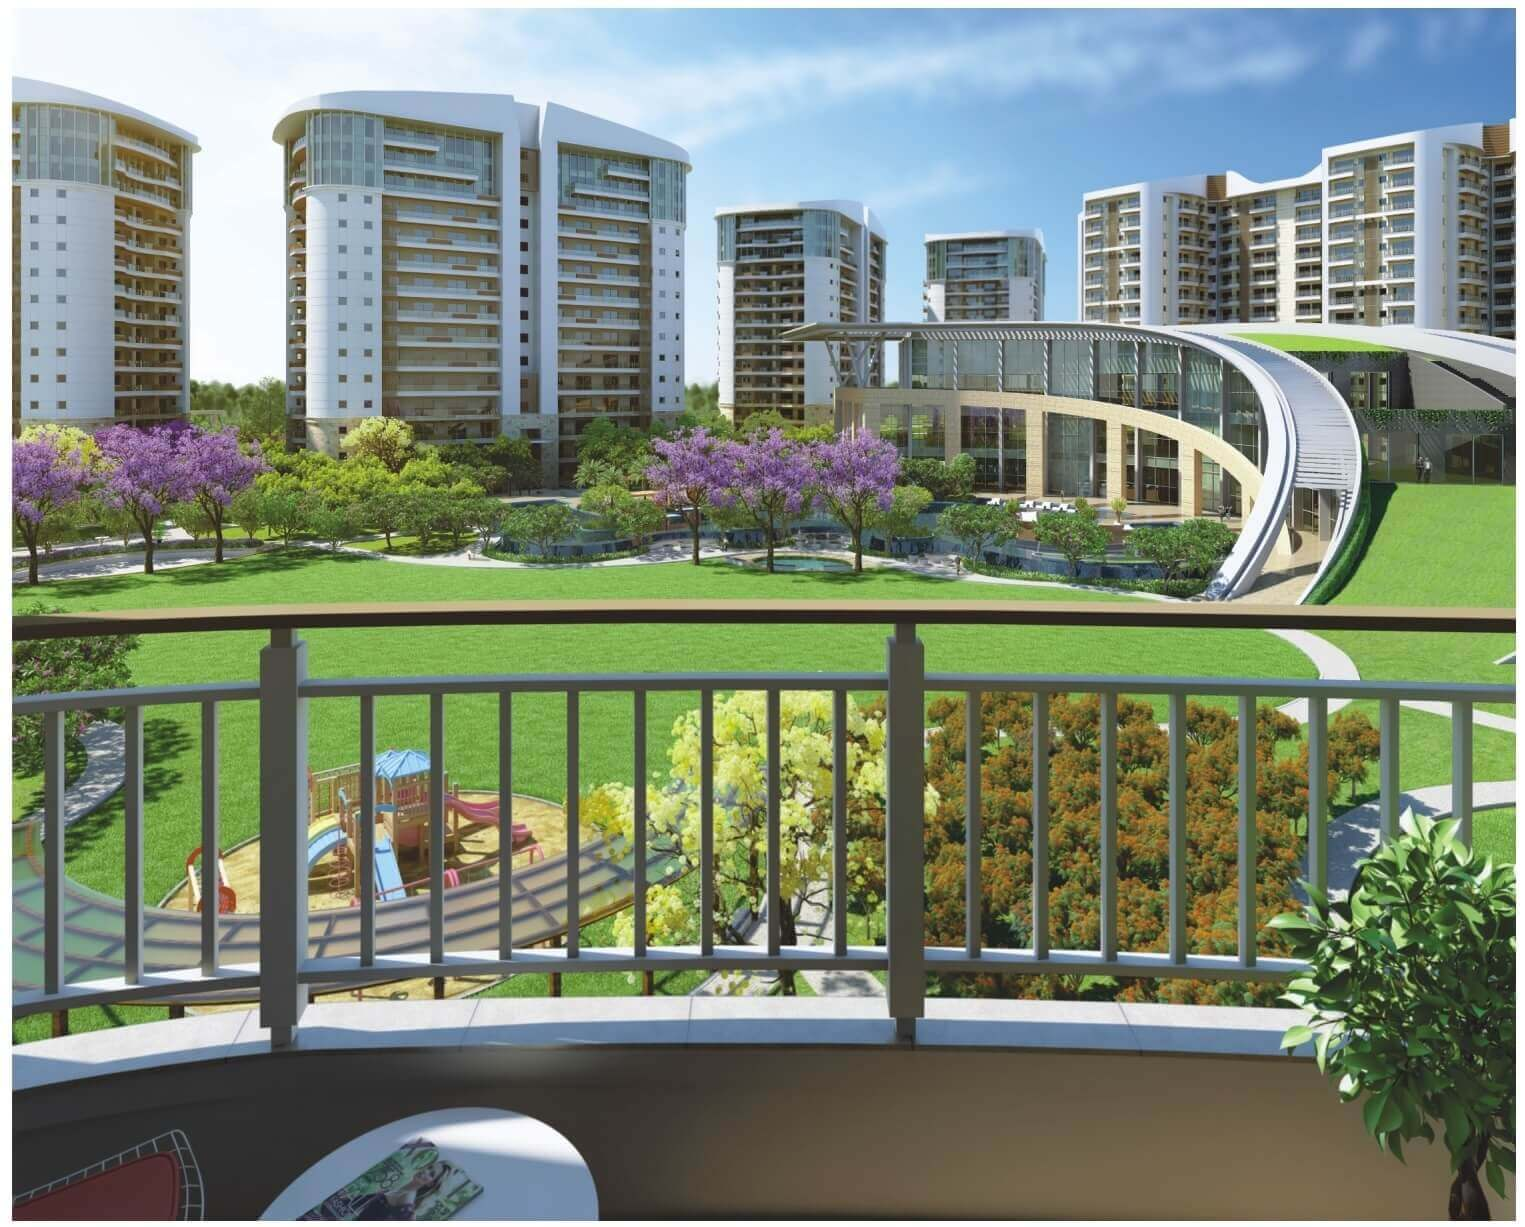 rishita mulberry heights amenities features1